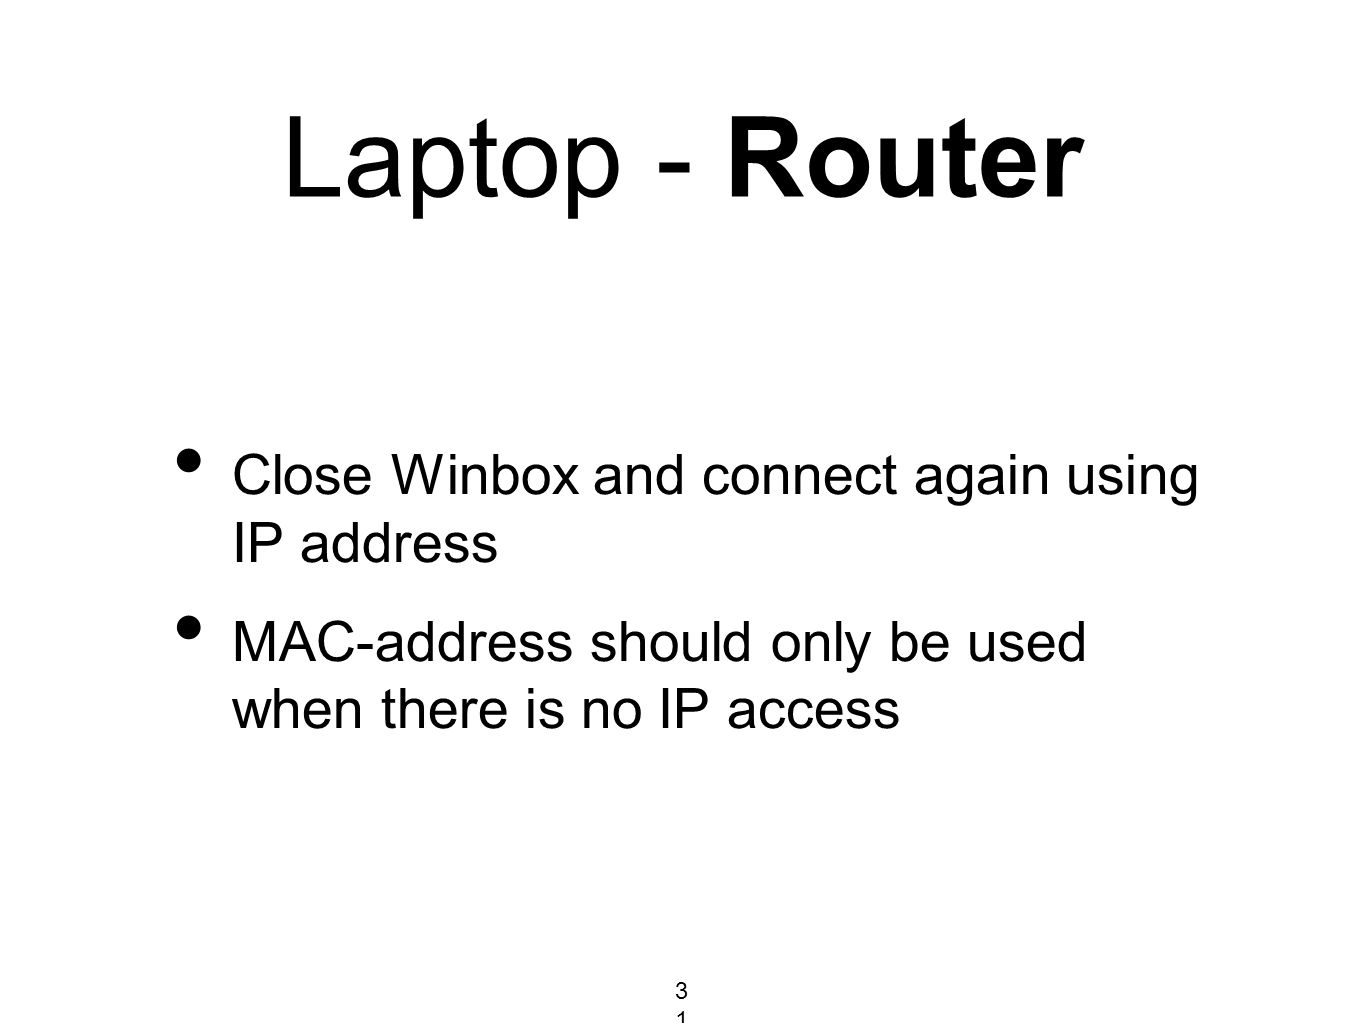 Laptop - Router Close Winbox and connect again using IP address MAC-address should only be used when there is no IP access 31